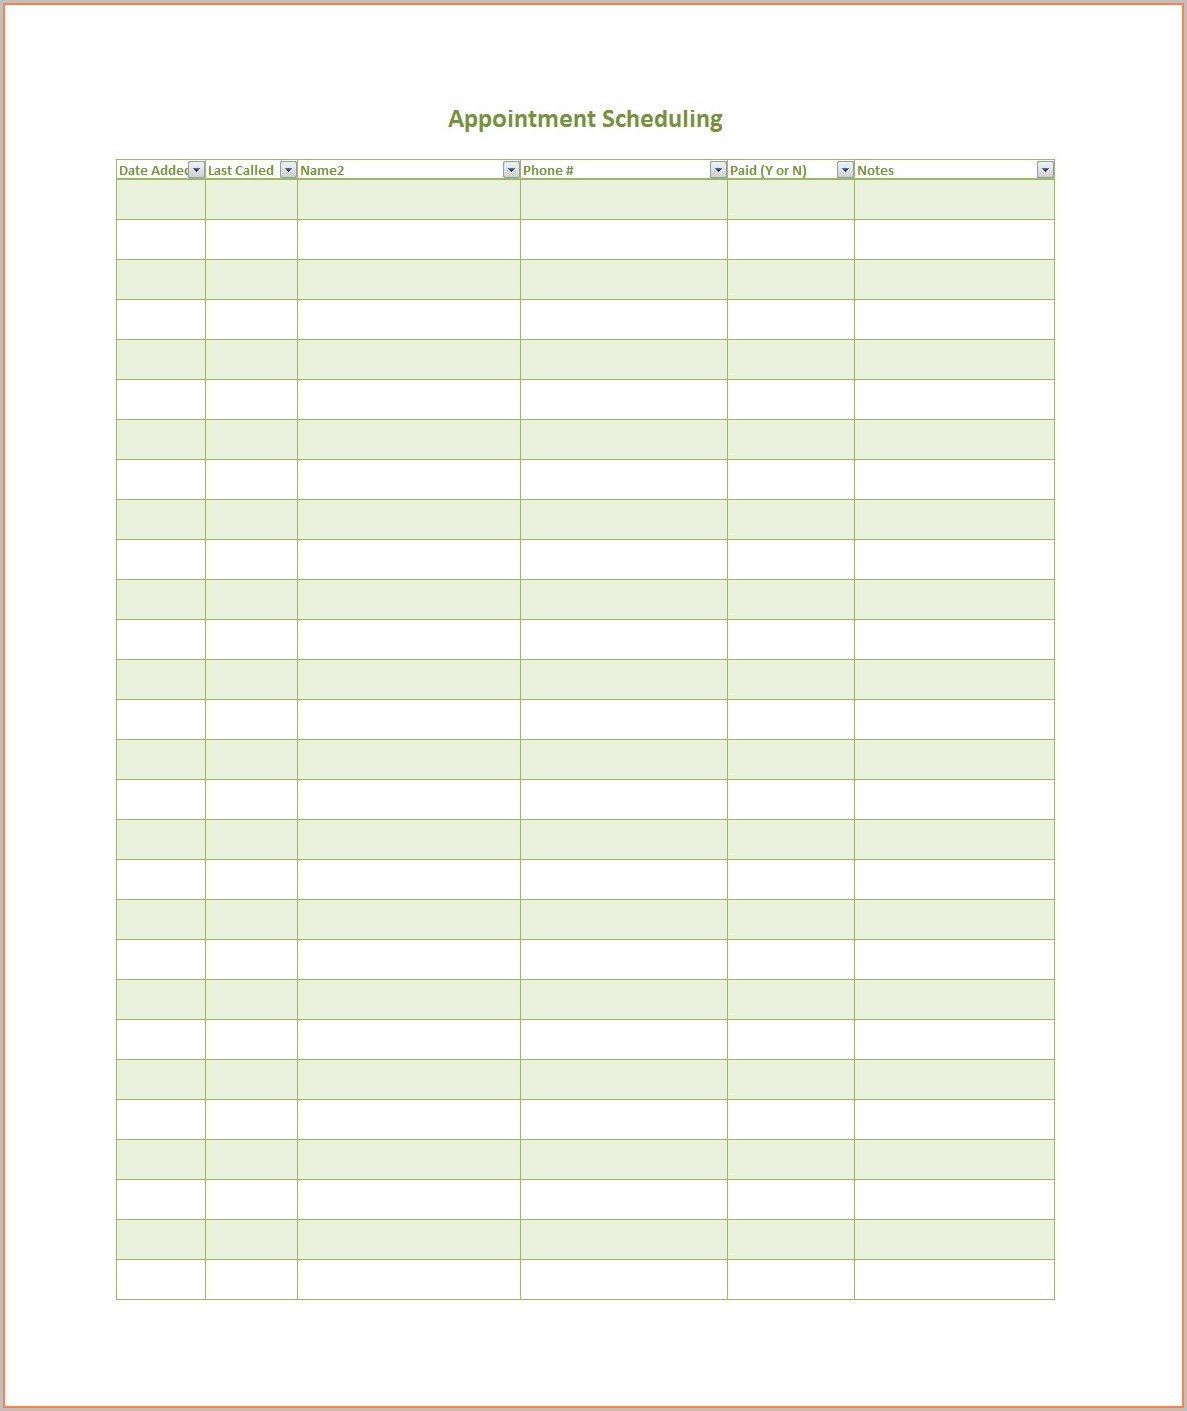 Appointment Scheduling Template Free